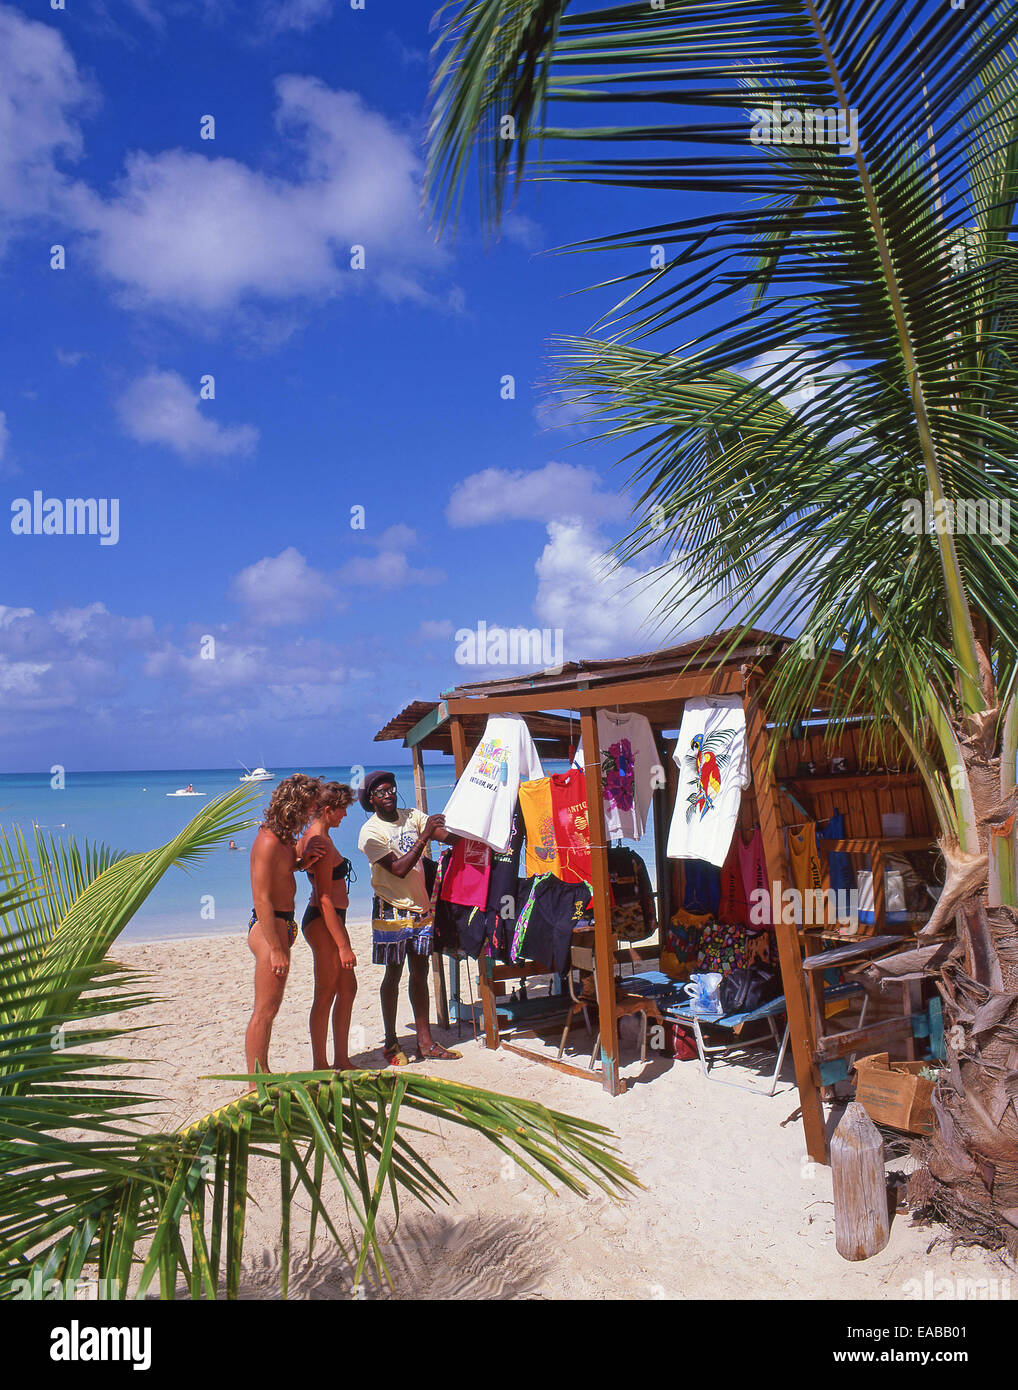 Blocage de couple à la plage, Jolly, paroisse de Saint Mary's, Antigua, Antigua et Barbuda, Petites Antilles, Photo Stock